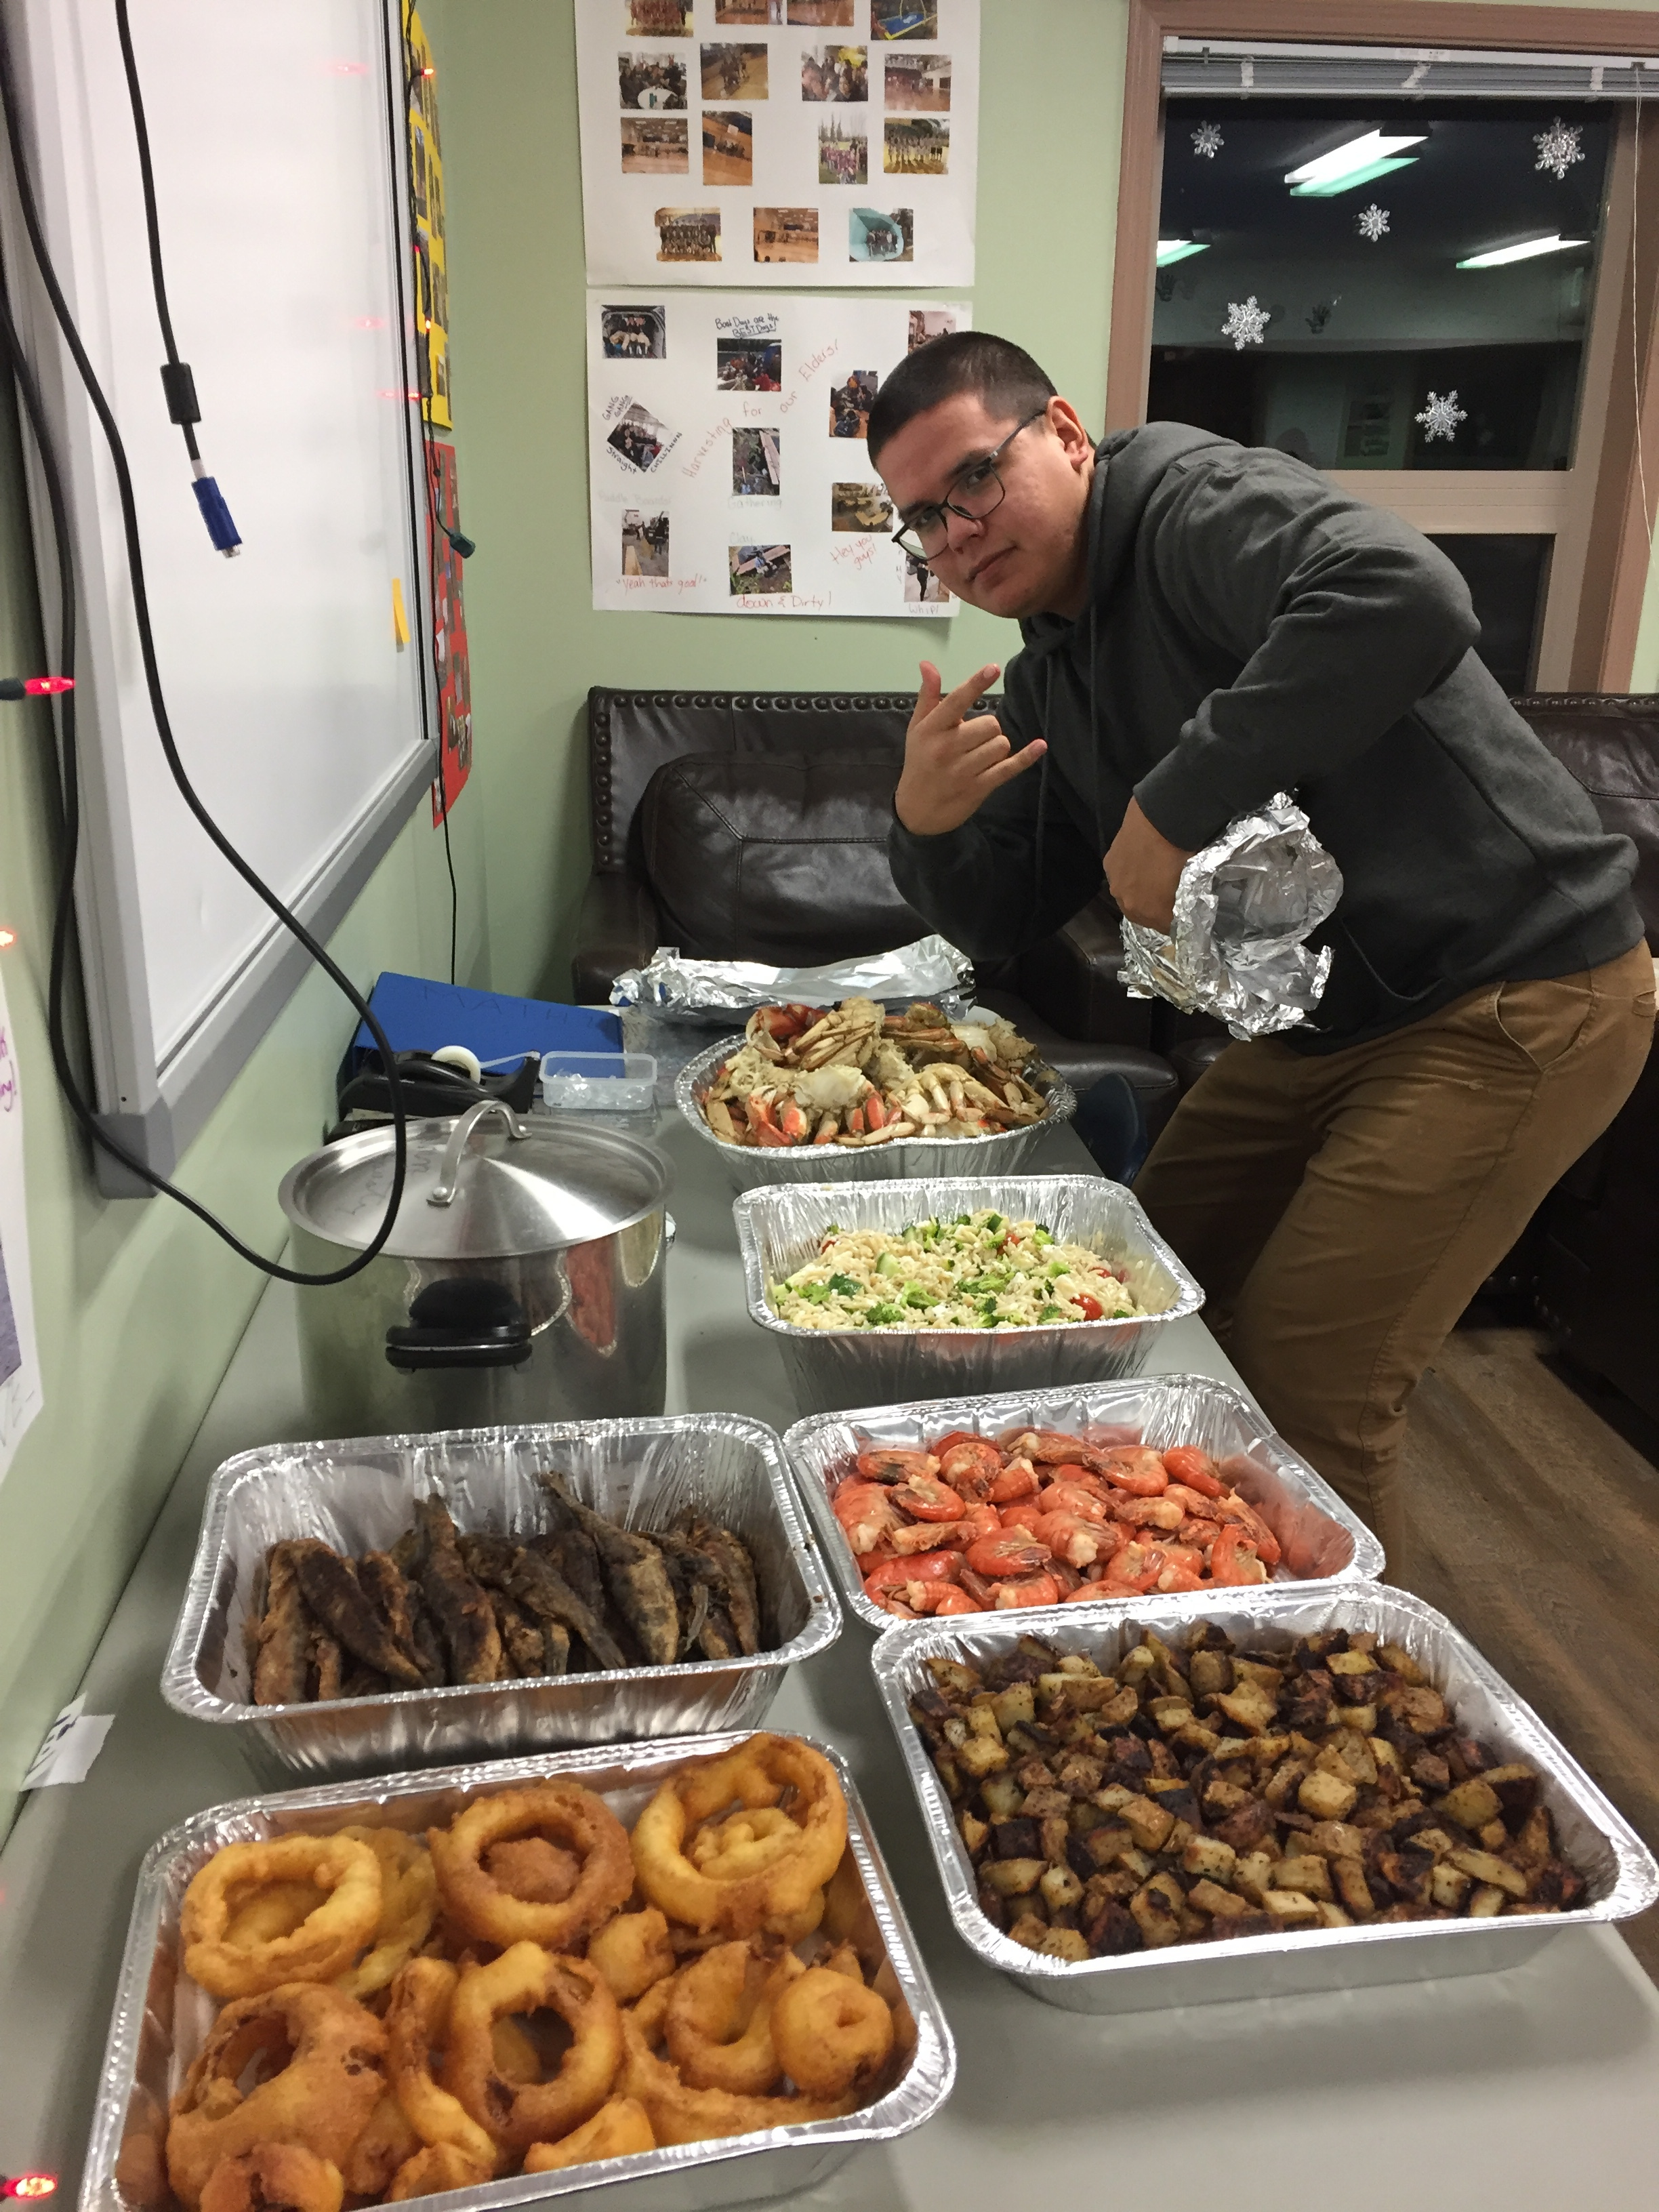 Howie at the feast table 2: onion rings, eulachons, orzo salad, shrimp, potatoes, crab & seaweed soup!